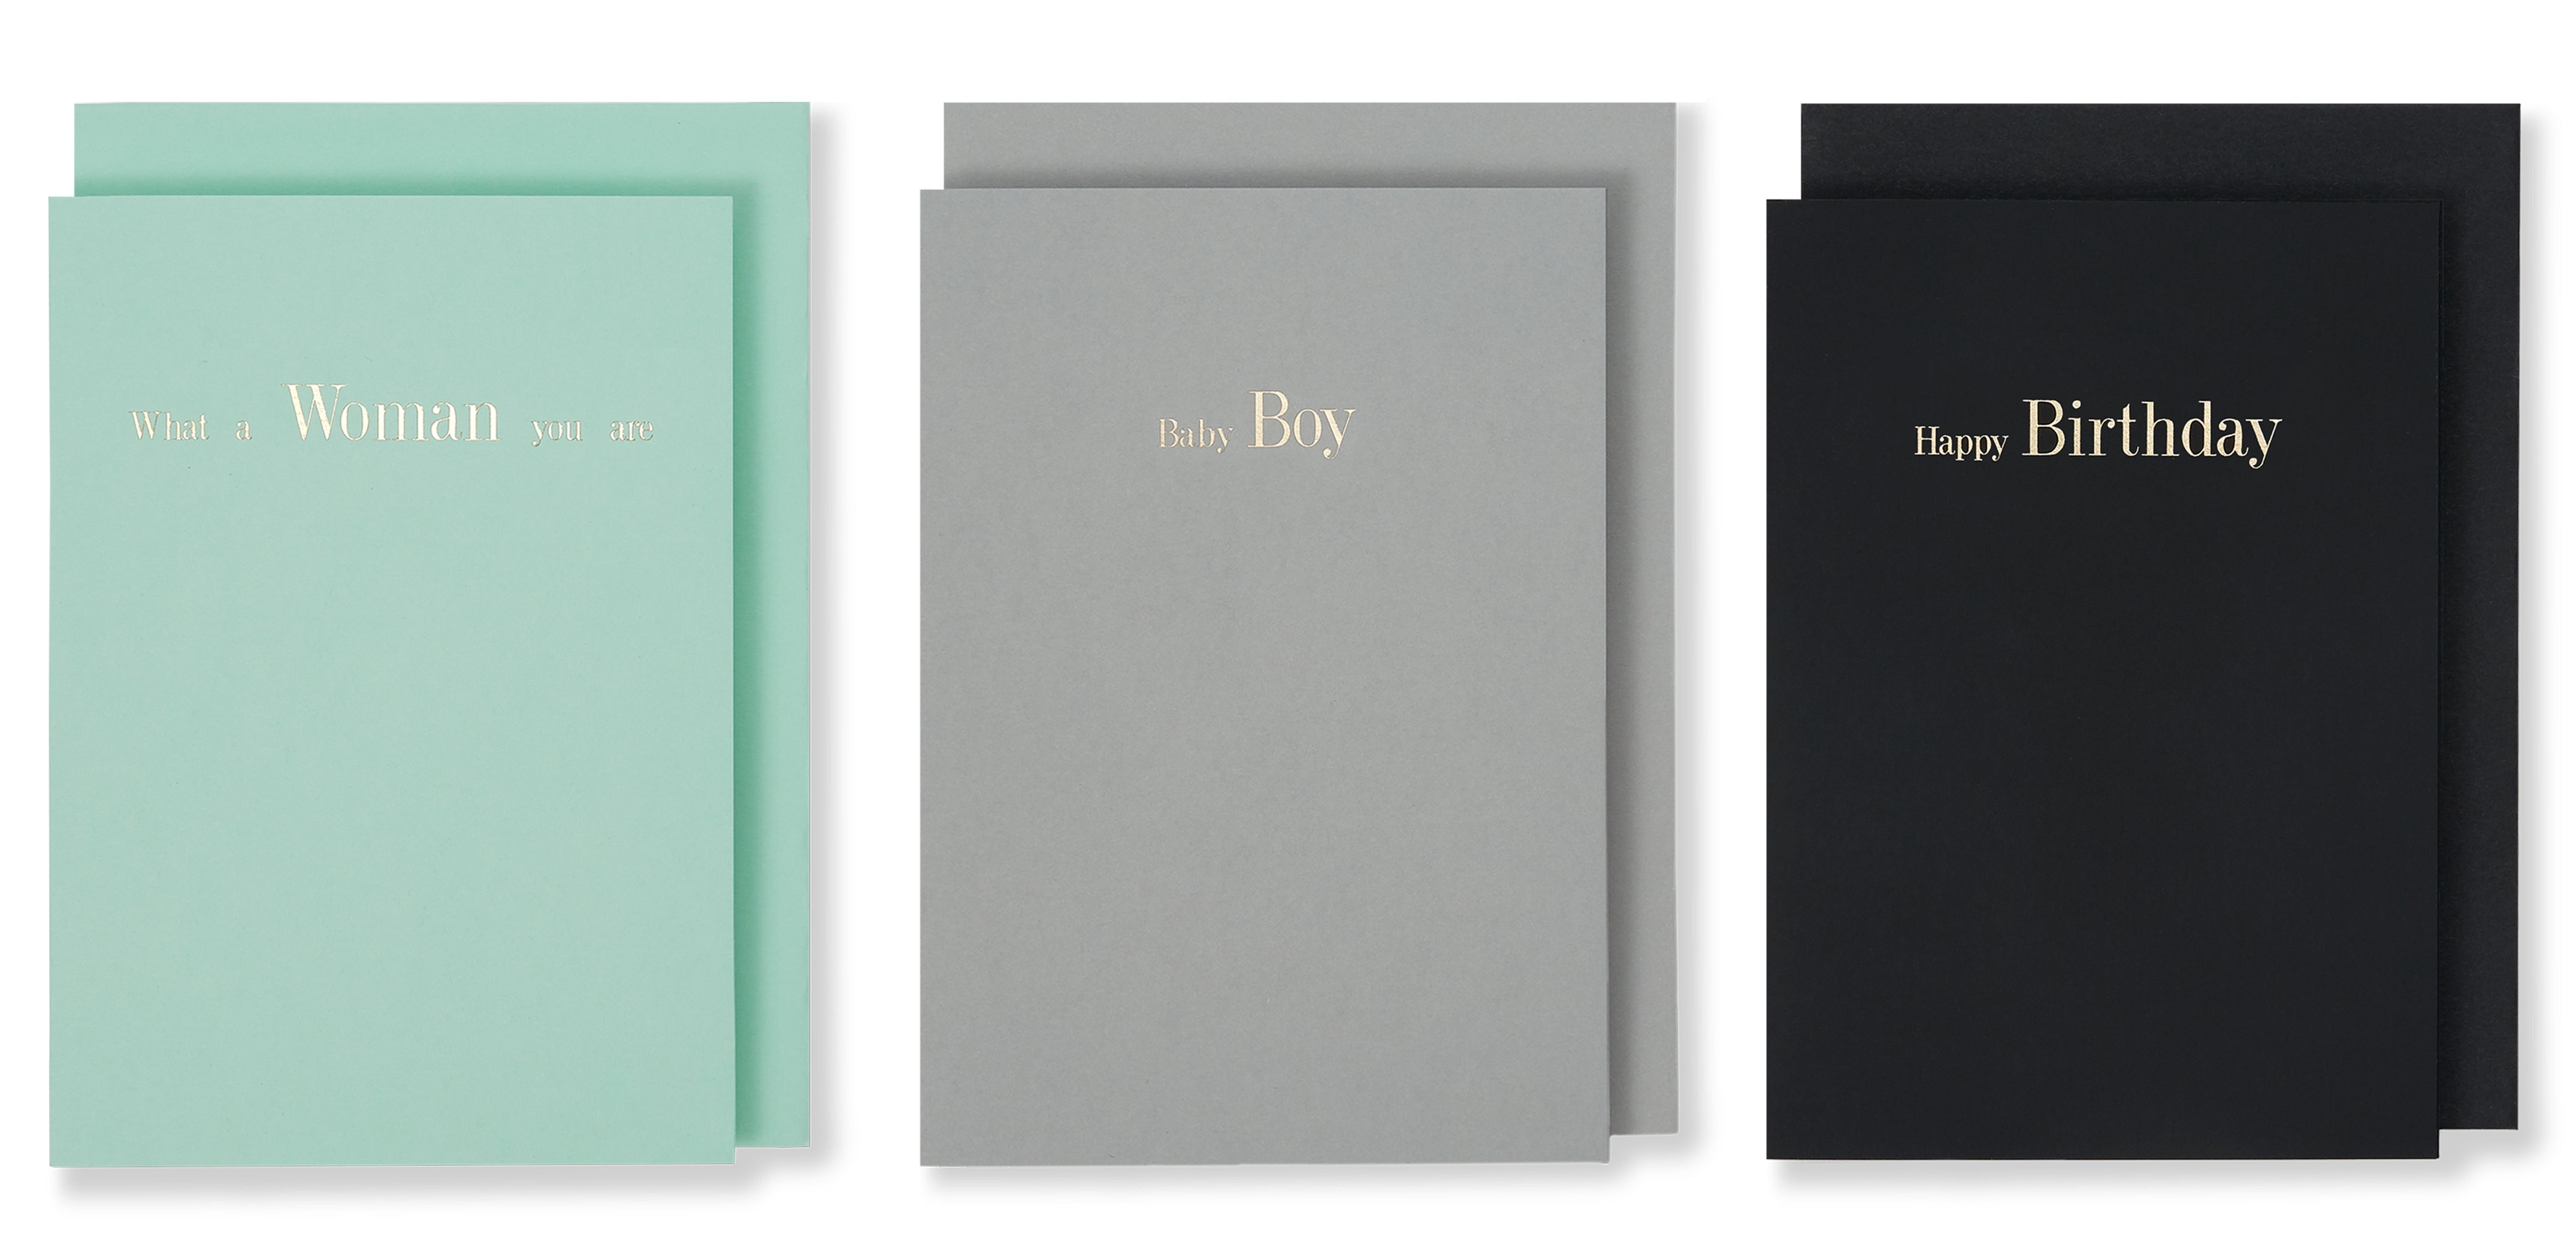 Most Popular Greeting Cards - Story of Elegance